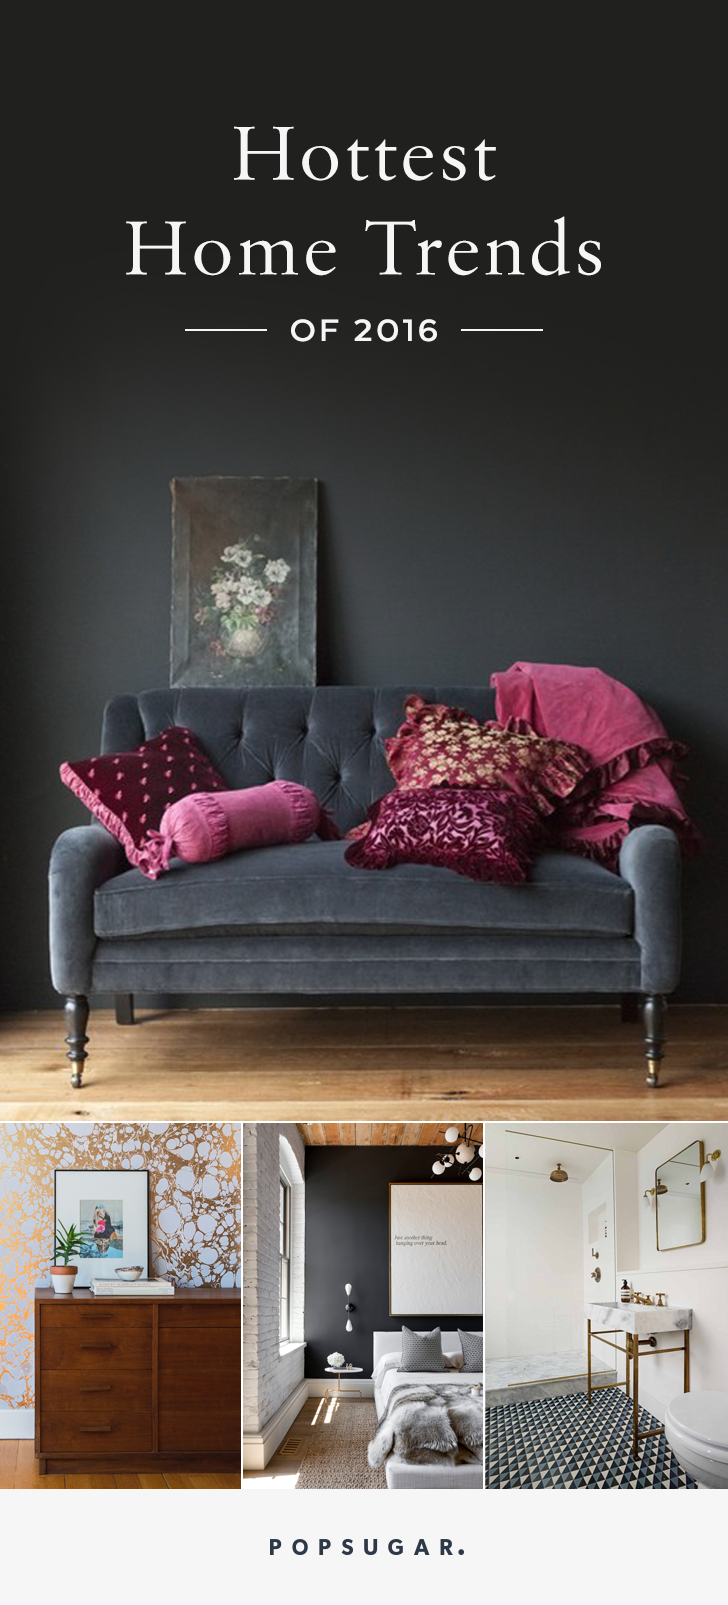 Pinterest Announces The Hottest Home Trends Home Decor Home Trends House Interior